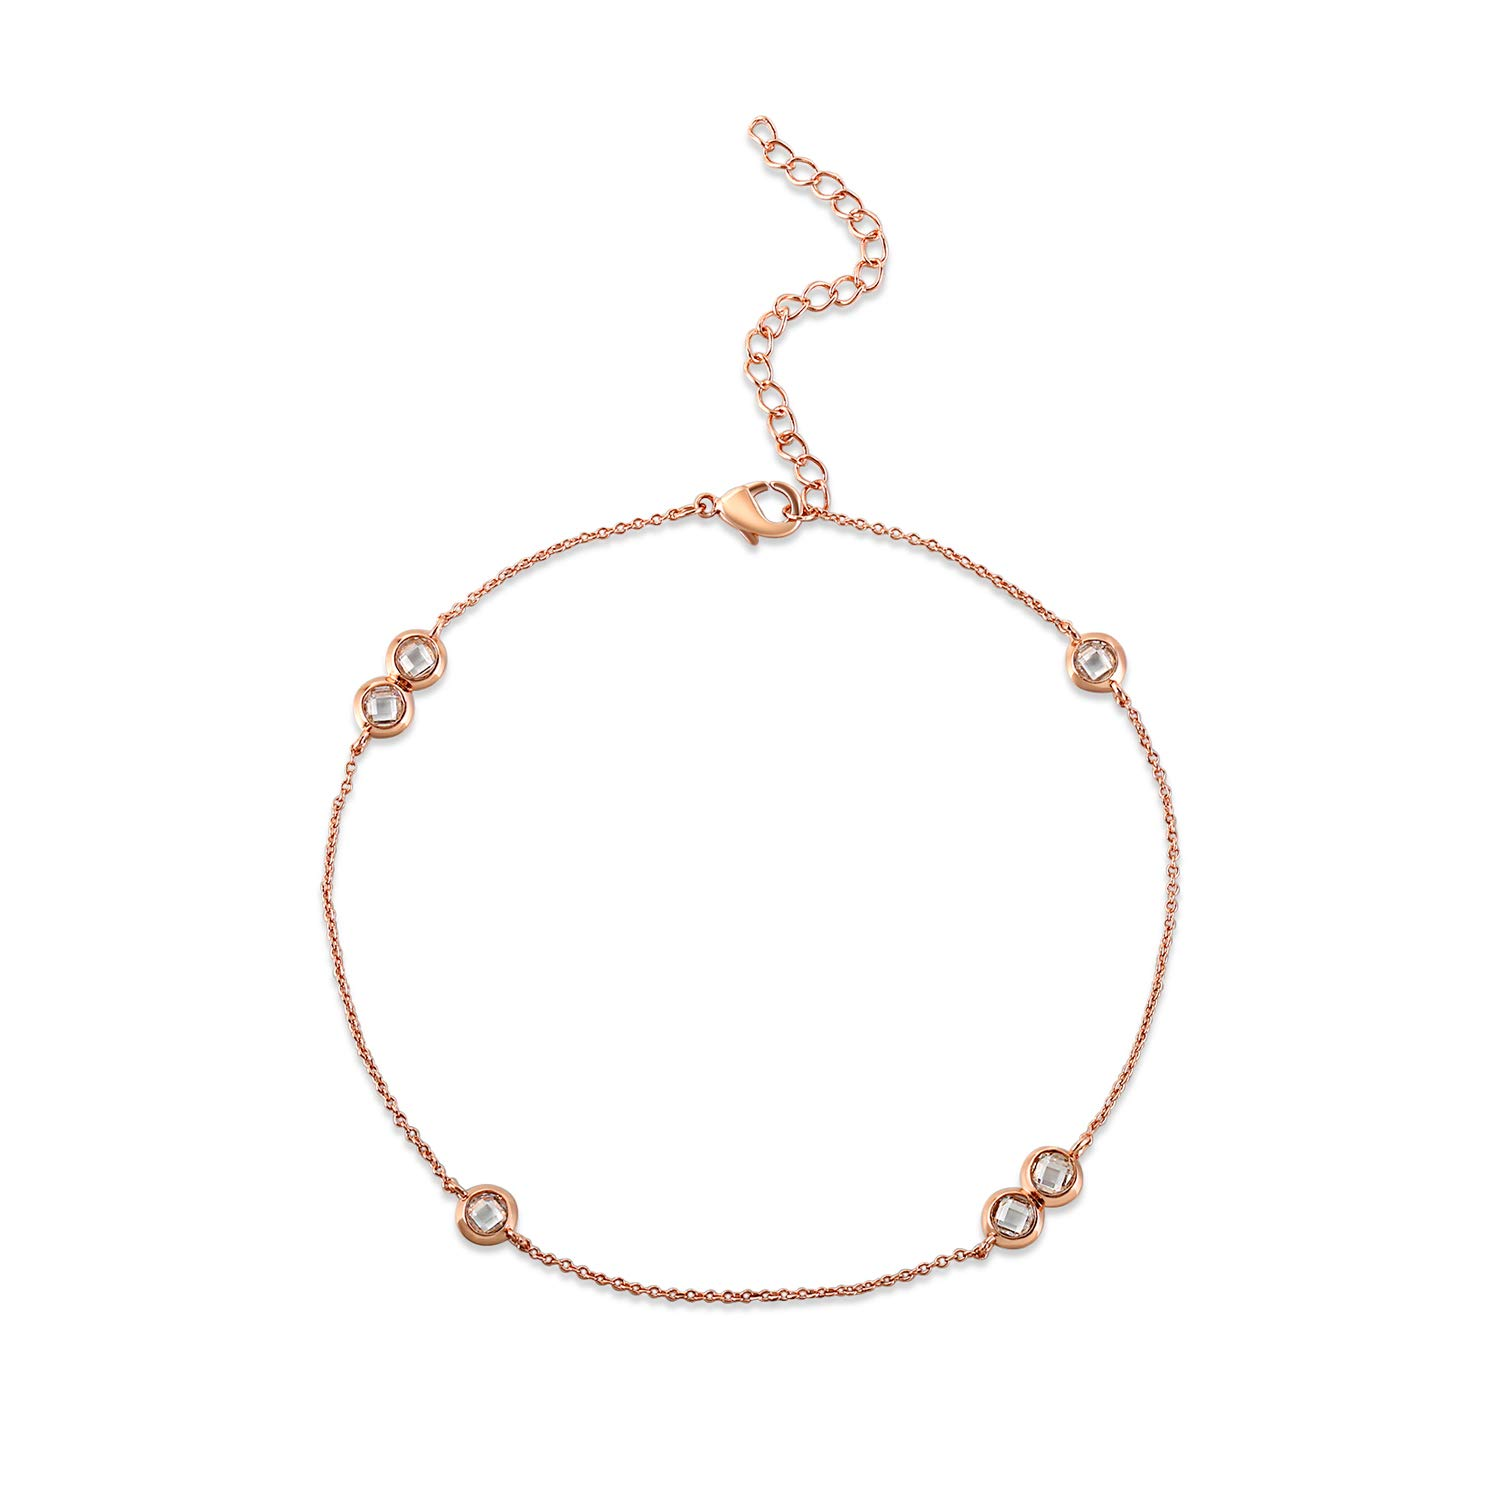 QUINBY 14K Rose Gold Plated Ankle Bracelets For Women Cubic Zirconia Adjustable Anklet Bracelets Chain Fashion Collection Lady Foot Jewellery QUINBY Jewellery F10600012250